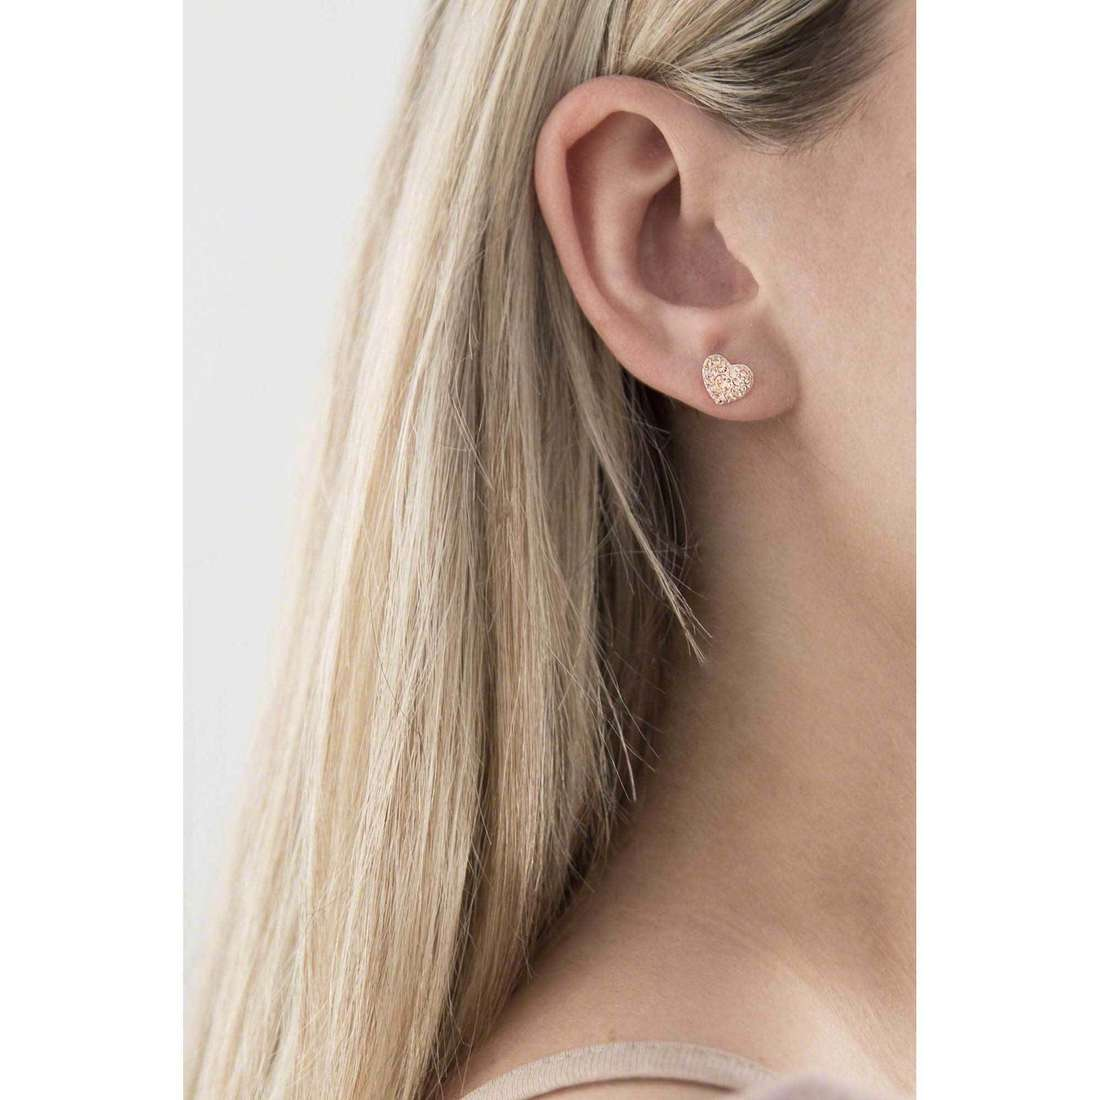 Fossil boucles d'oreille Spring 14 femme JF01151791 indosso